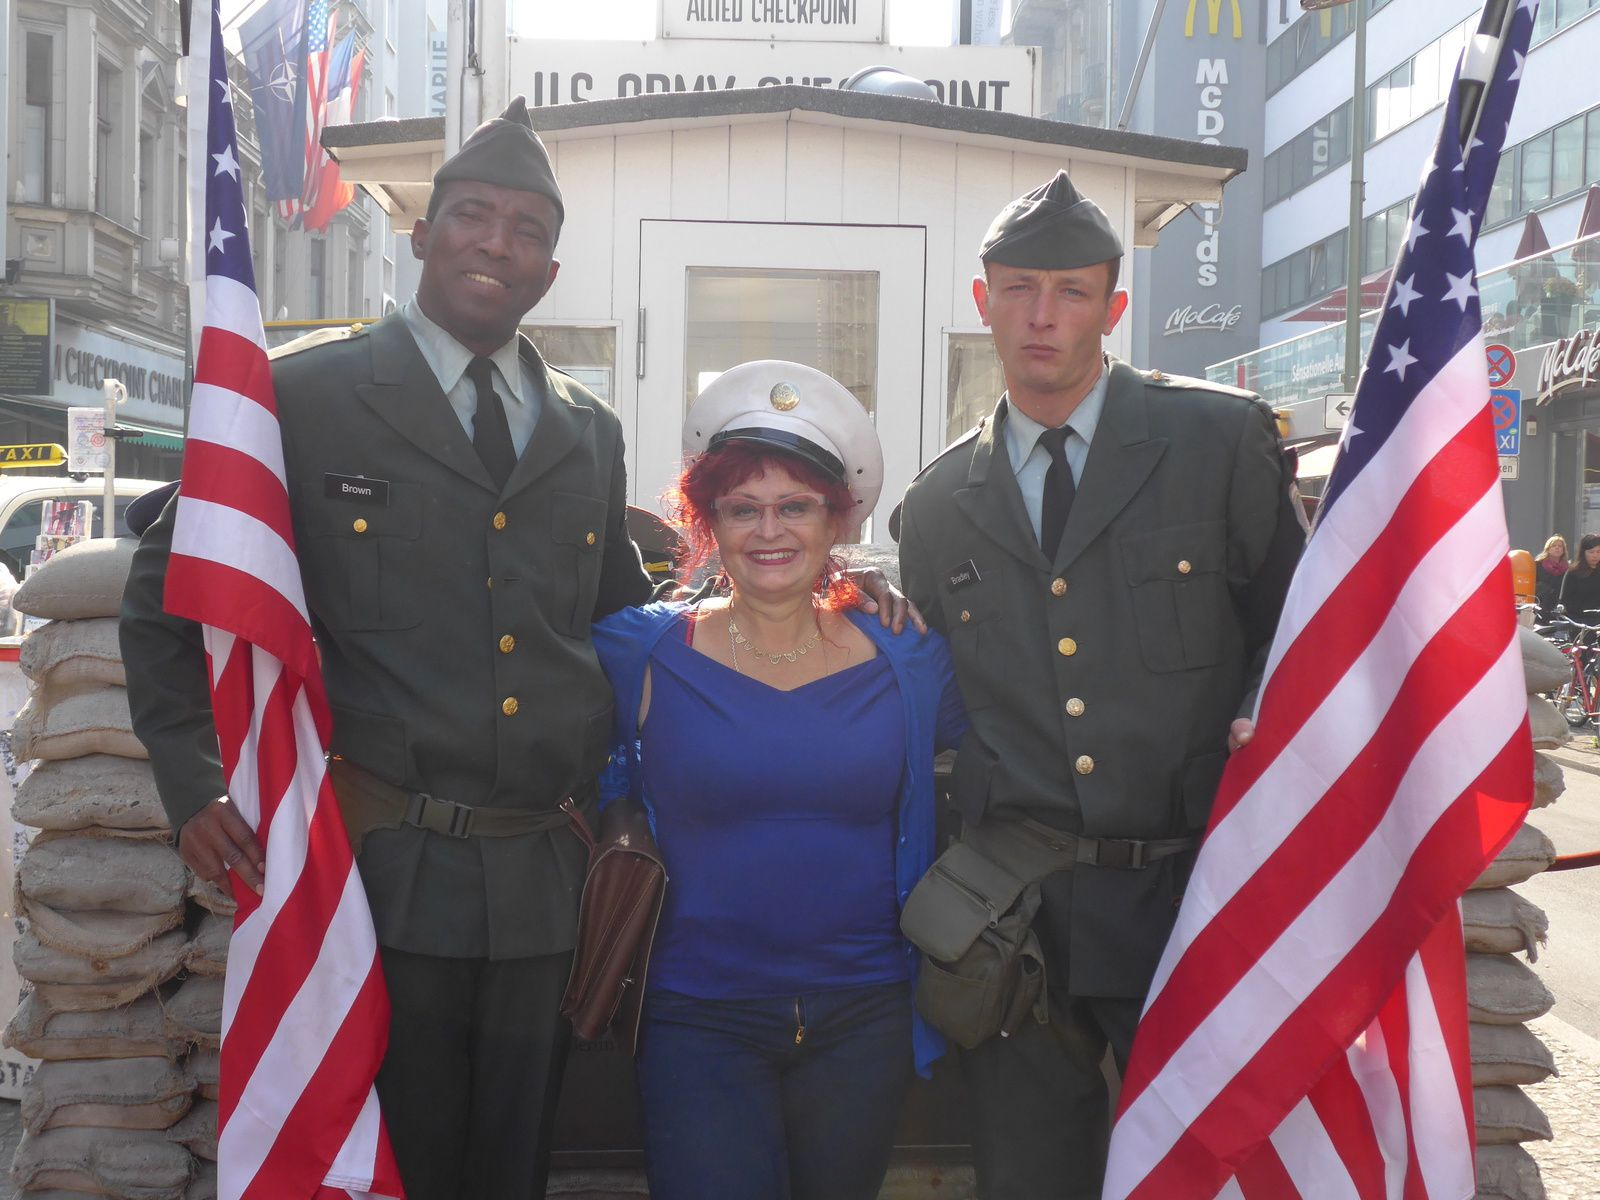 Check point Charlie...